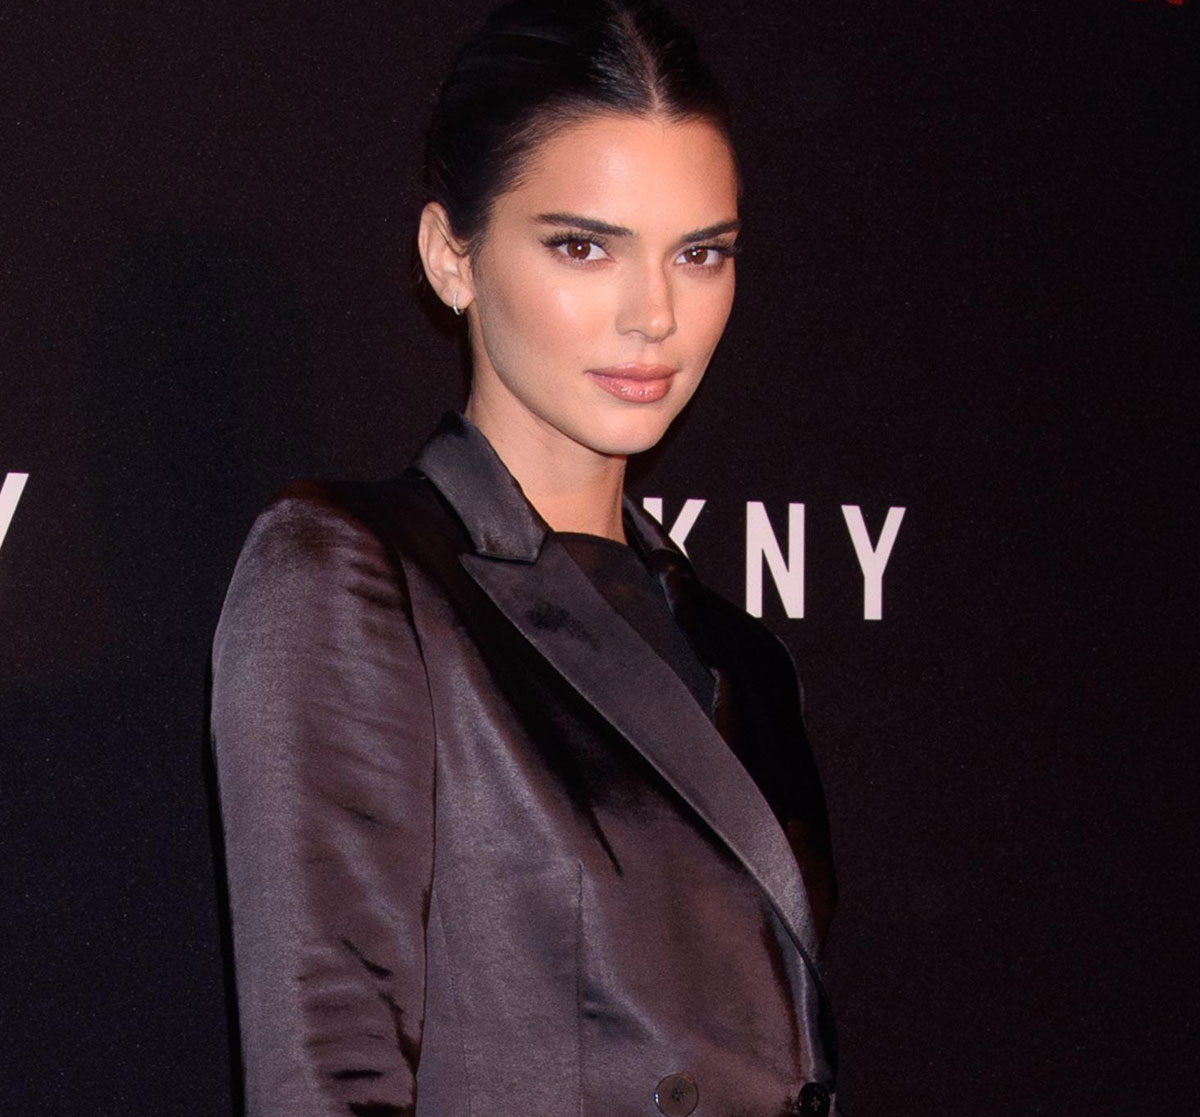 Kendall Jenner Granted Restraining Order Against Man Who Threatened To Shoot Her As Separate Intruder Attempts Naked Swim In Her Pool